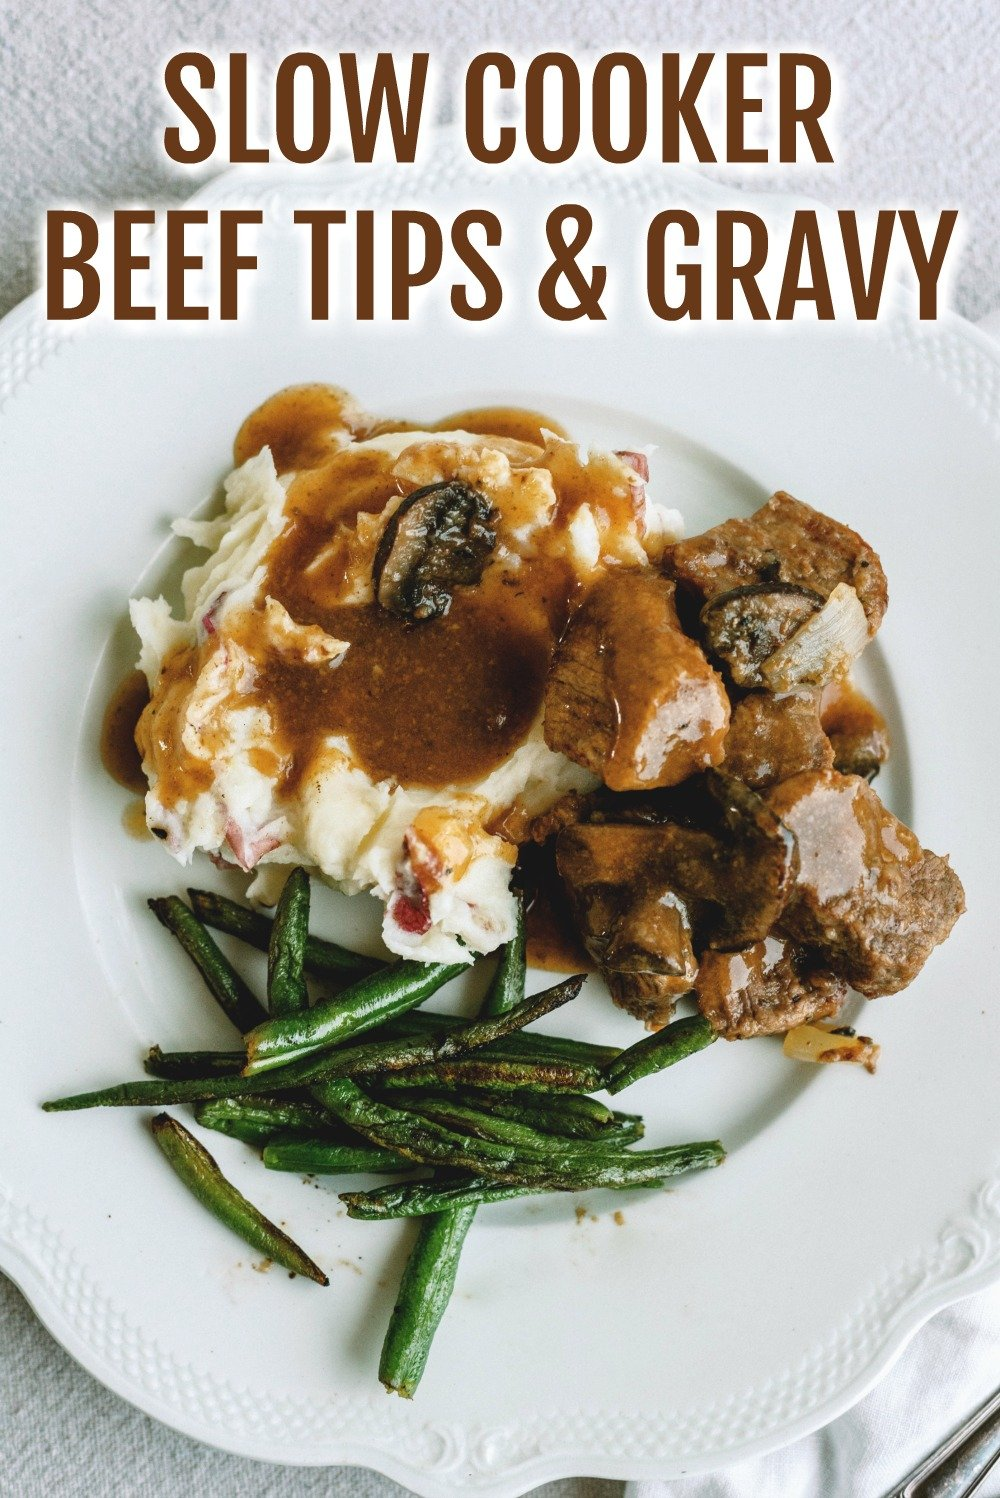 Slow Cooker Beef Sirloin Tips and Gravy served over mashed potatoes with green beans